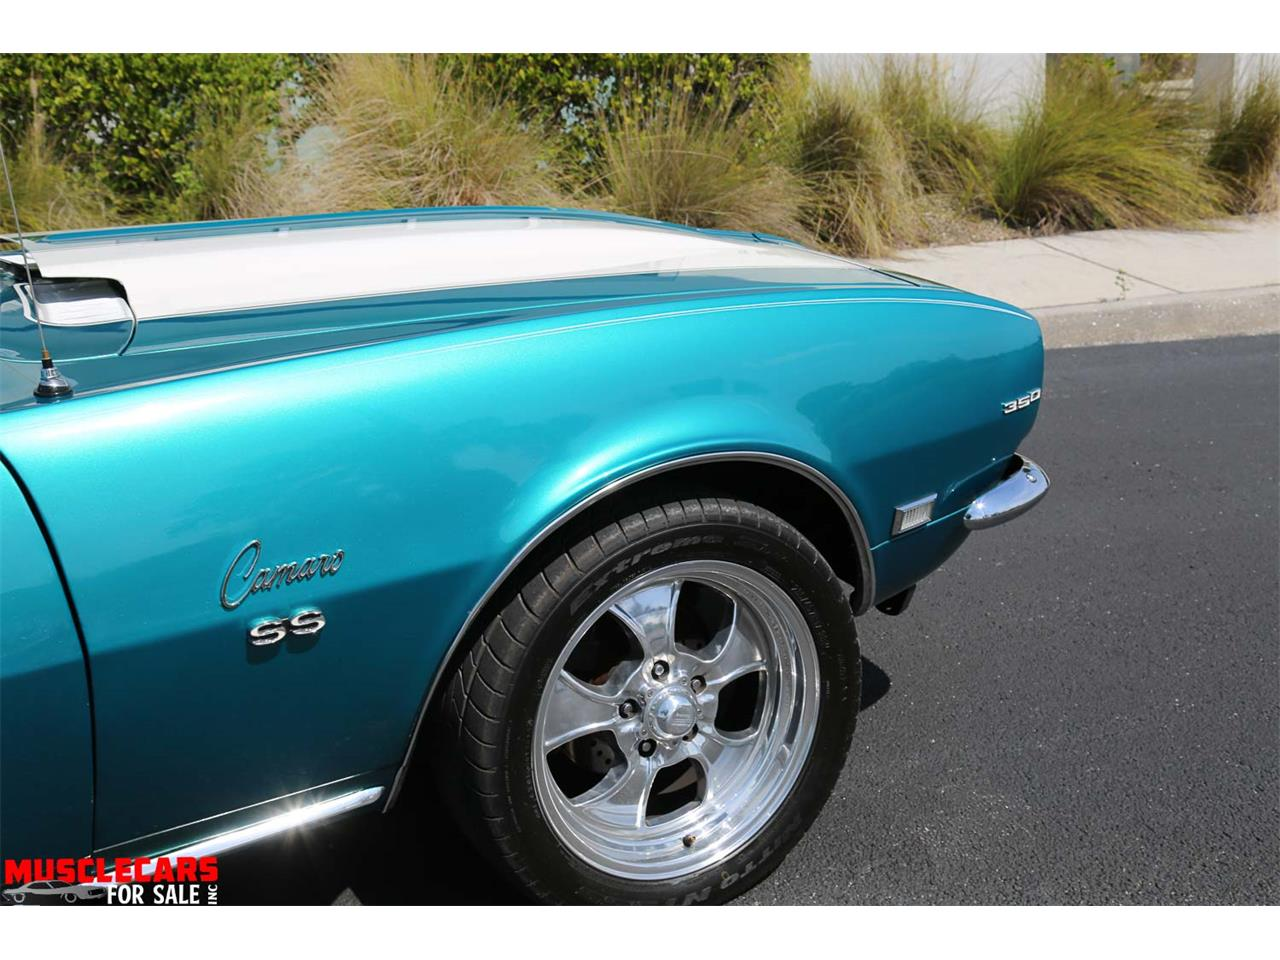 Large Picture of Classic '68 Chevrolet Camaro SS located in Florida Offered by Muscle Cars For Sale Inc. - PNWZ